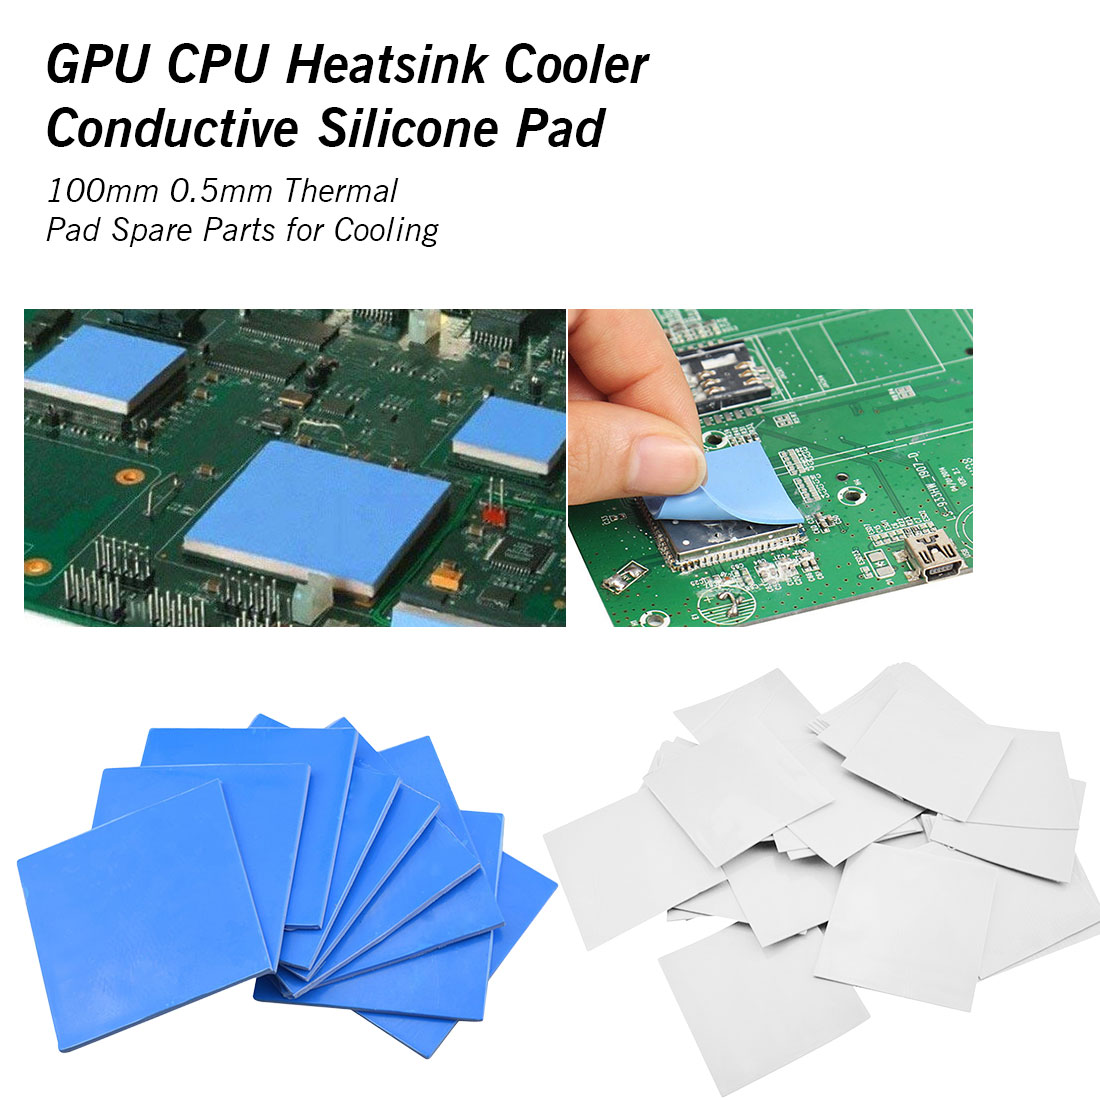 0.5mm*10cm*10cm Thermal Pad Adhesive GPU CPU Conductive Silicone Pads Heatsink Radiator Cooling Heat Sink Cooler For Pc Laptop